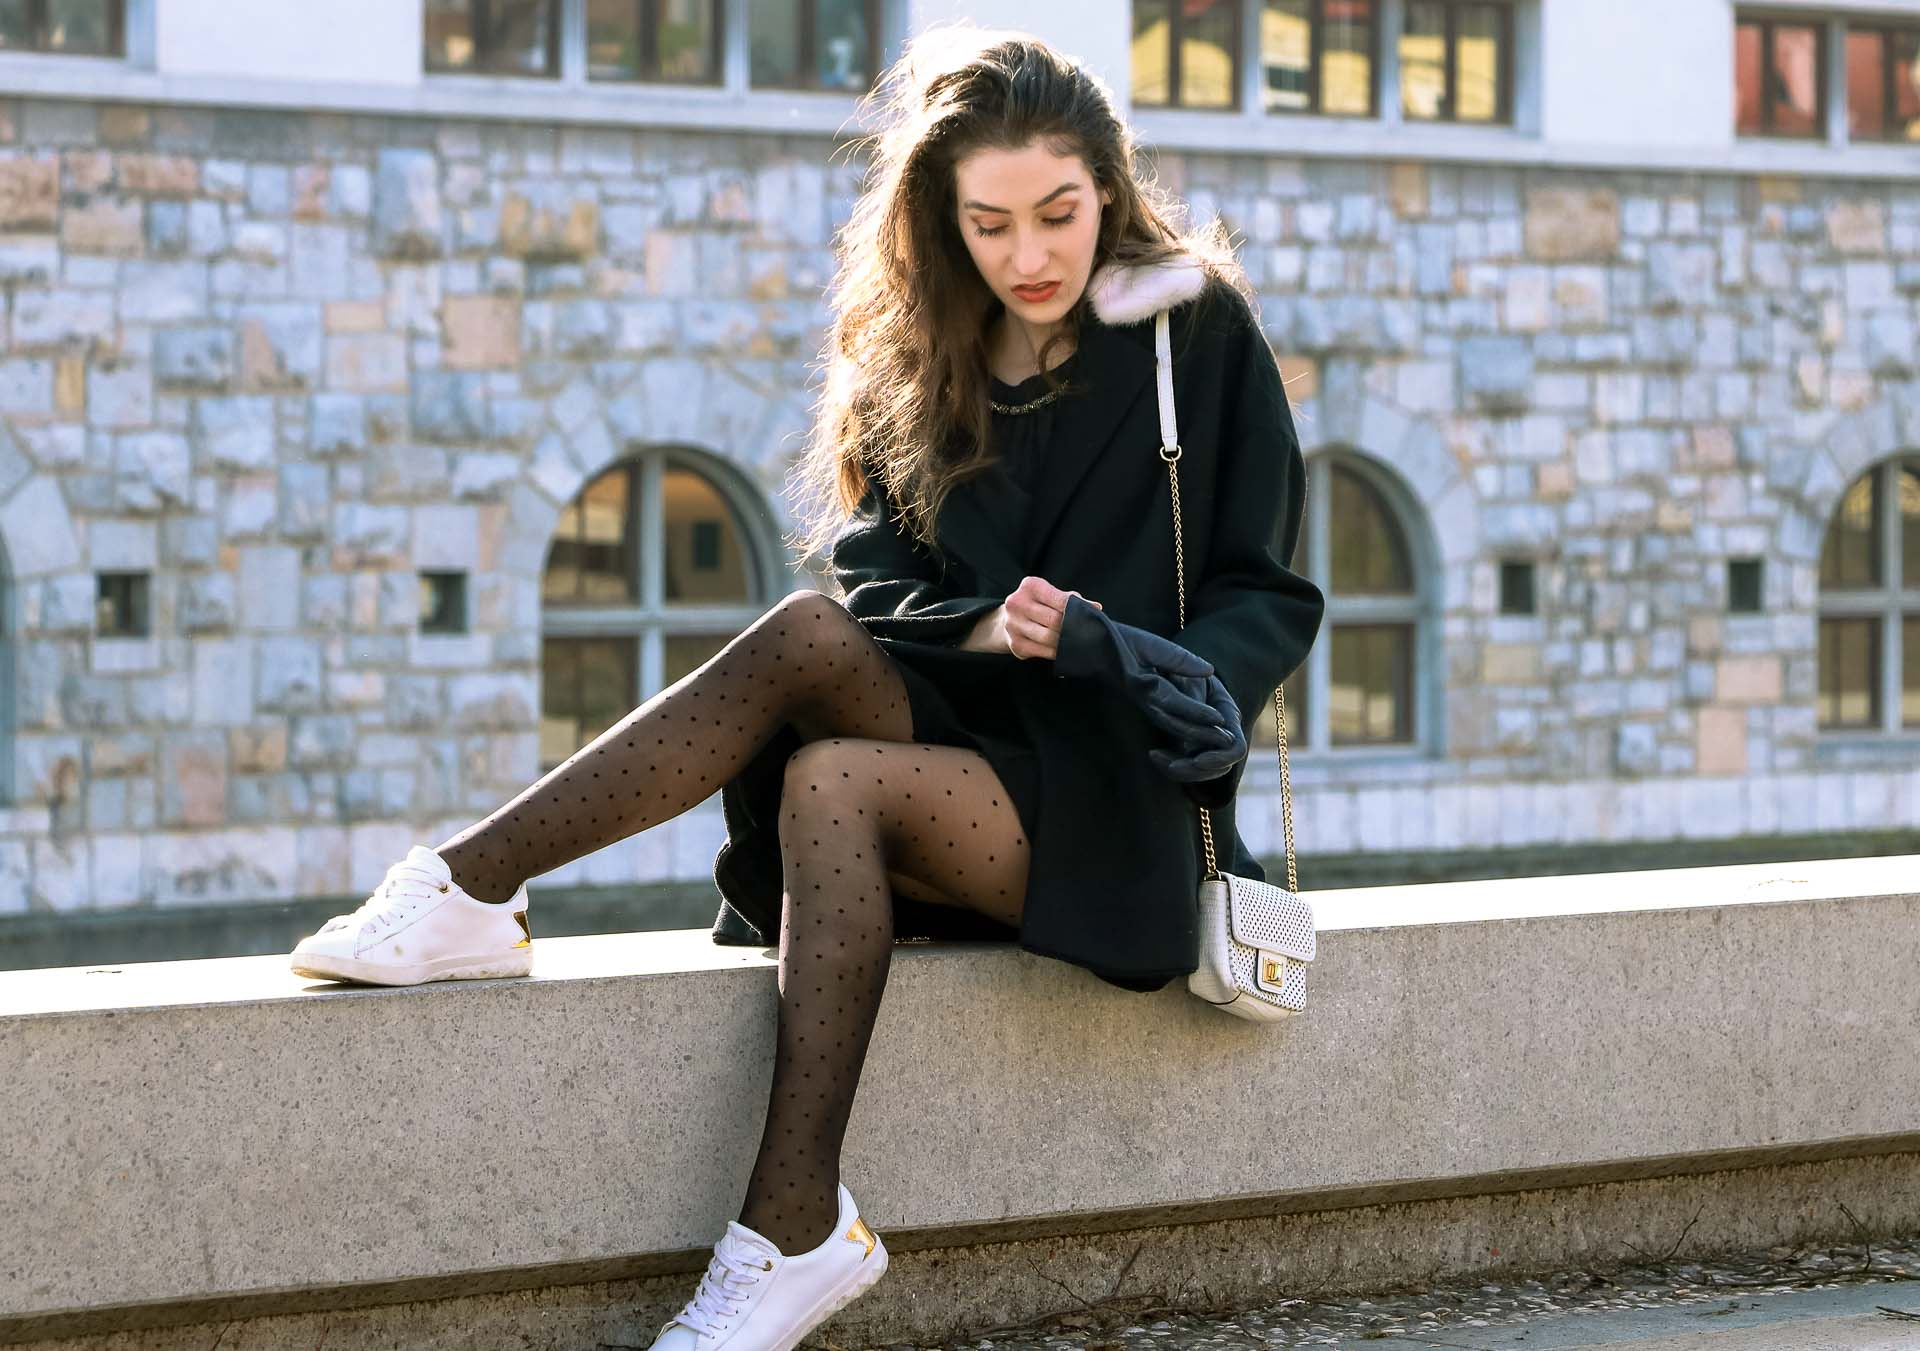 Fashion Blogger Veronika Lipar of Brunette from Wall Street wearing black Escada oversized short coat, black mini skirt and white sneakers from Diesel with black polka dot tights and white shoulder chain bag and blue leather gloves while sitting on a wall